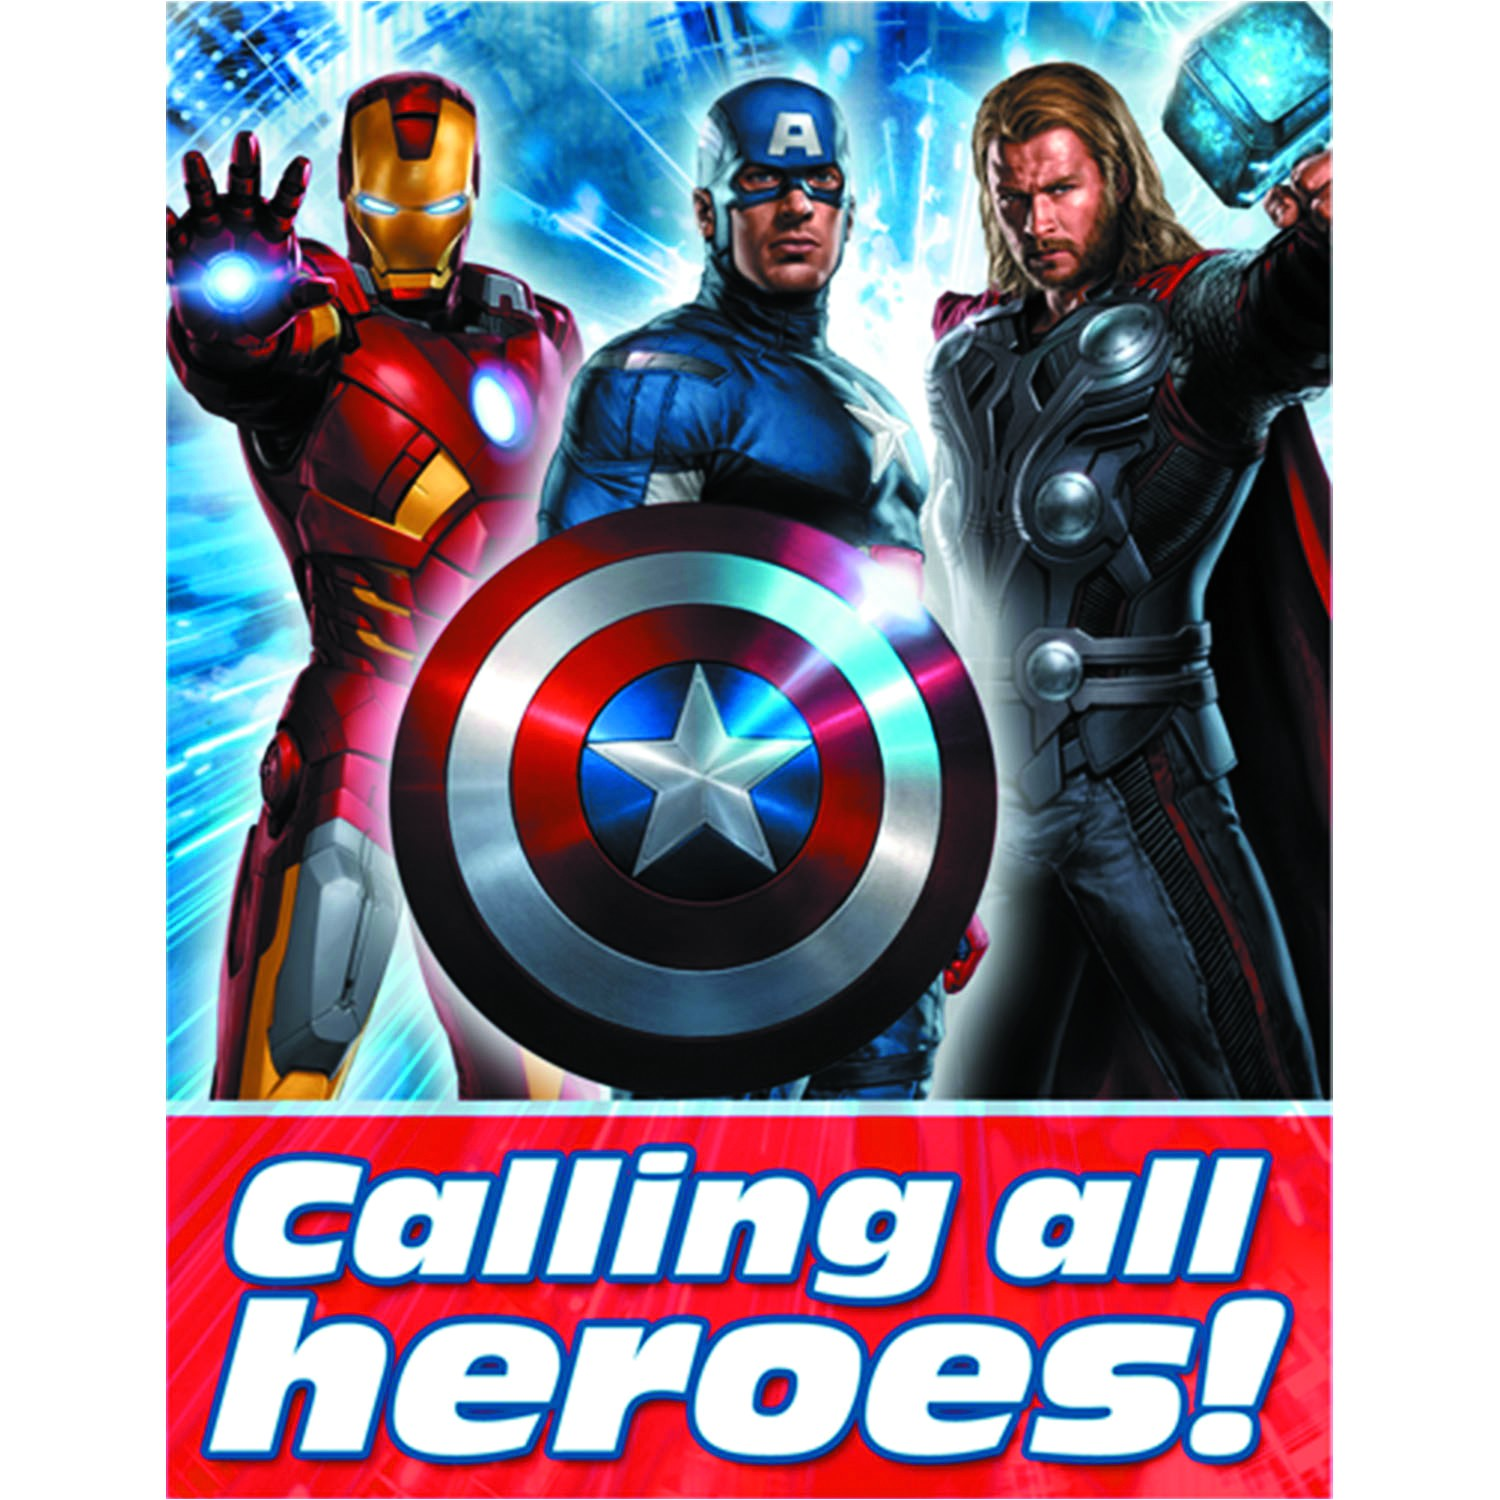 The Avengers Party Invitations Previewsworld Avengers Party Invitations 8pk C 0 1 3